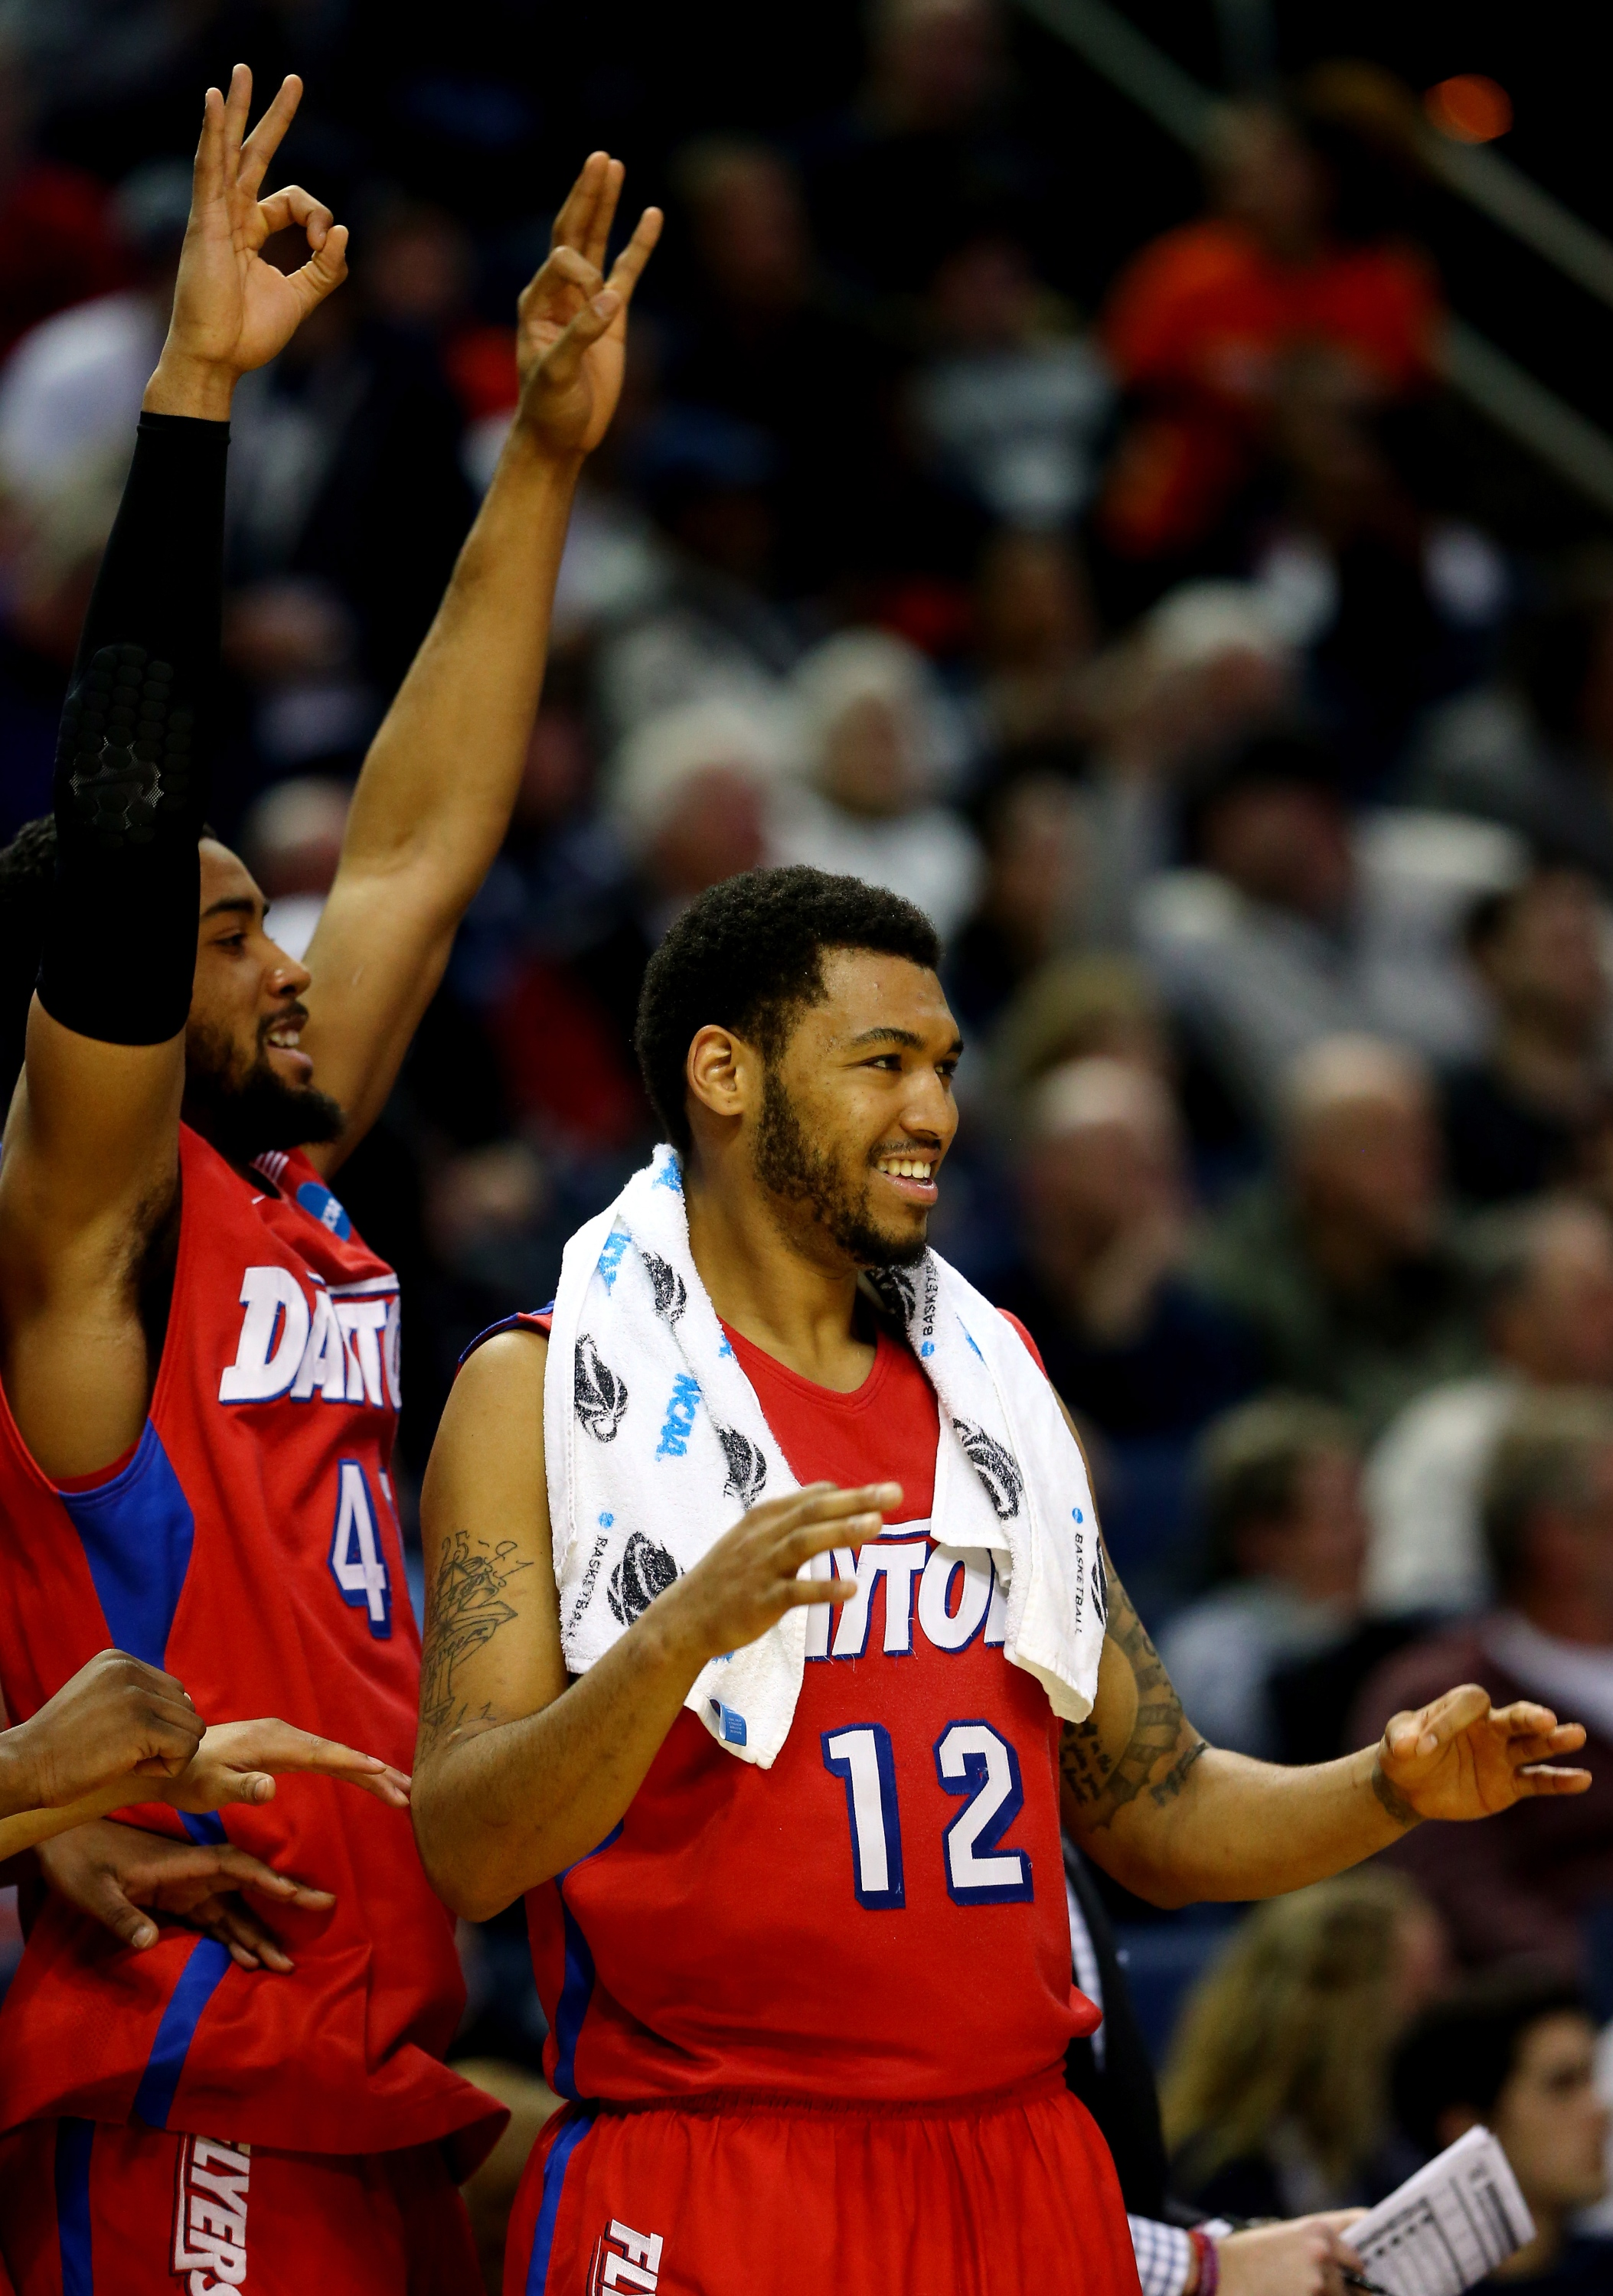 Jalen Robinson (R) and Devon Scott during a Dayton victory during the NCAA tournament. (Getty)